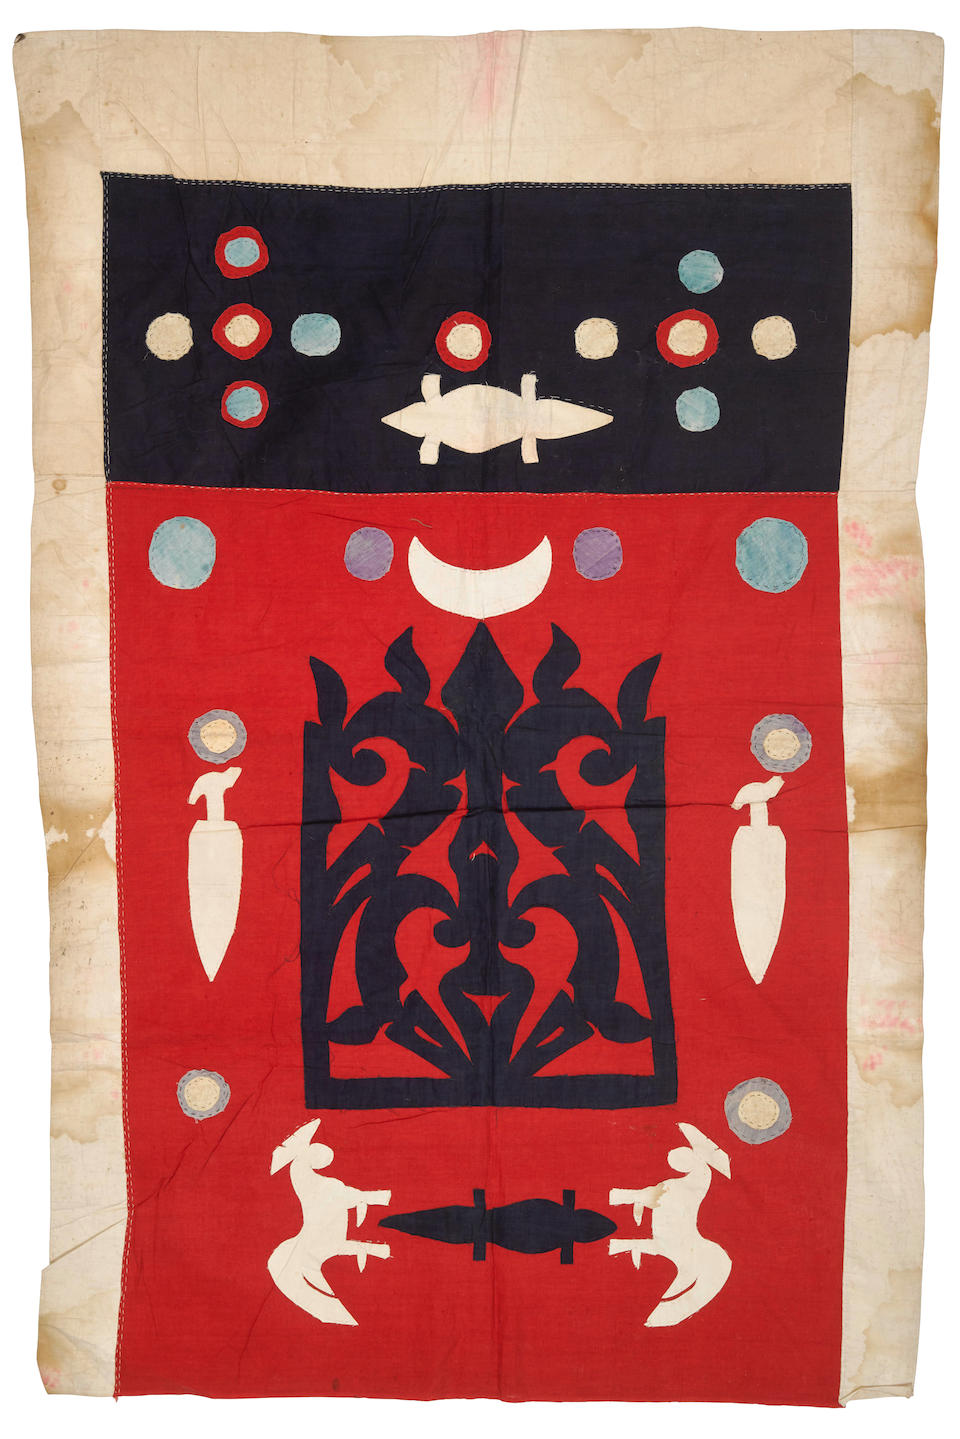 FILIPINO-AMERICAN WAR: TRIBAL BANNER. [Southern Philippines: 1890s.]